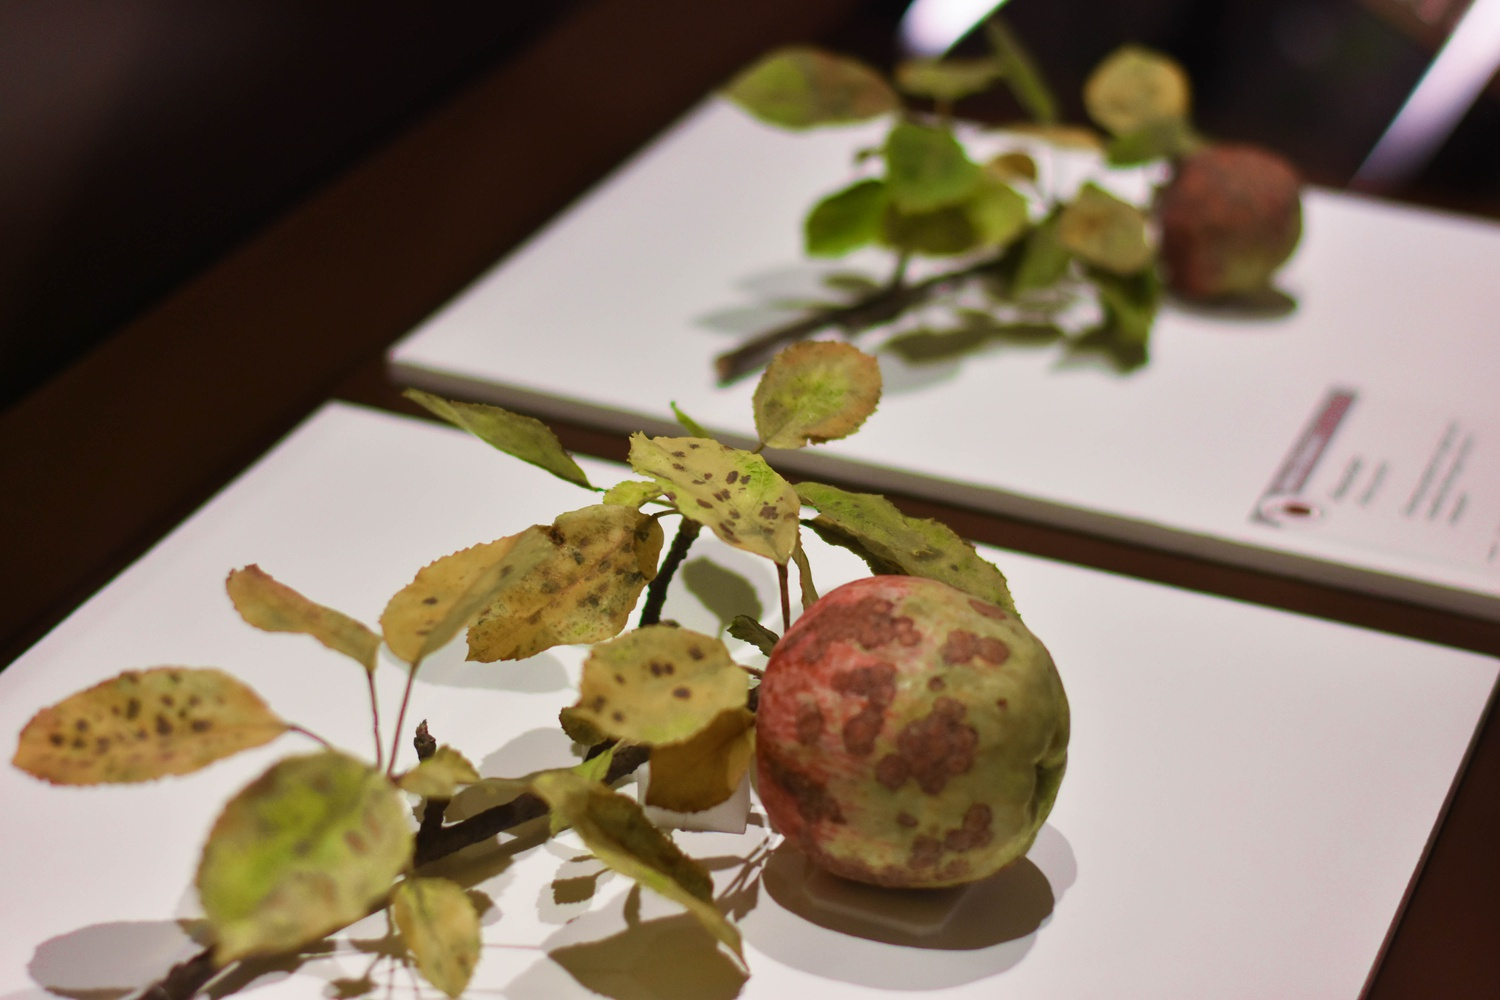 Models of rotten apples made from wax and glass are intended, according to their creator, to showcase the beauty that a supposedly spoiled object can hold.